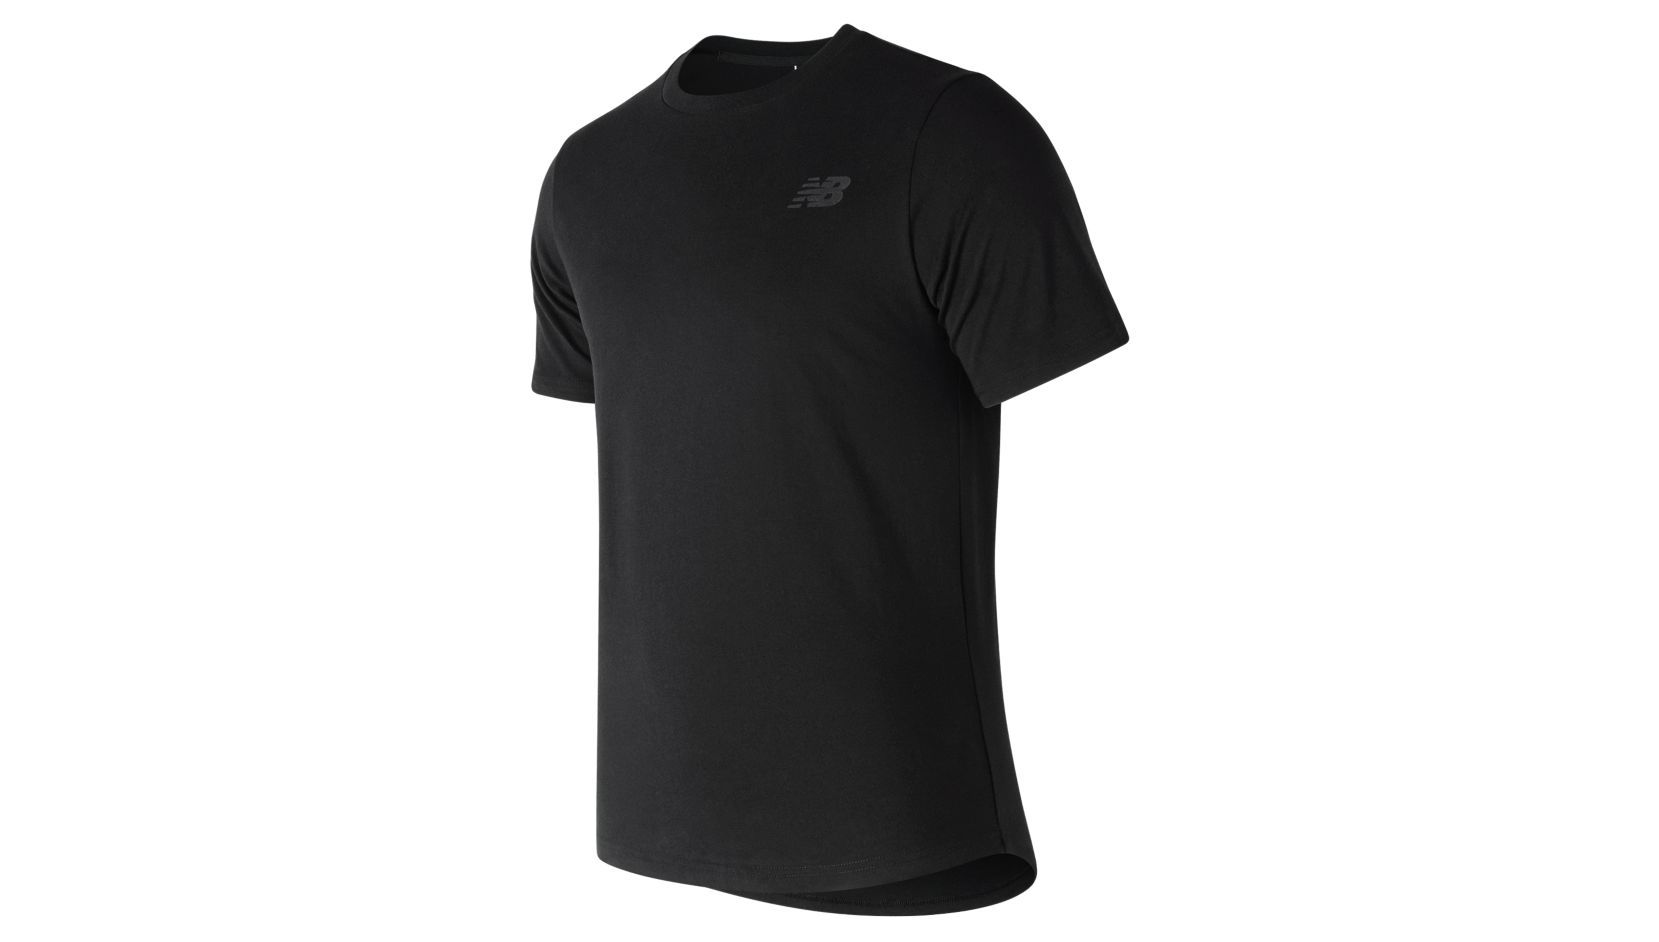 247 SPORT TIME TEE new balance футболка chiks